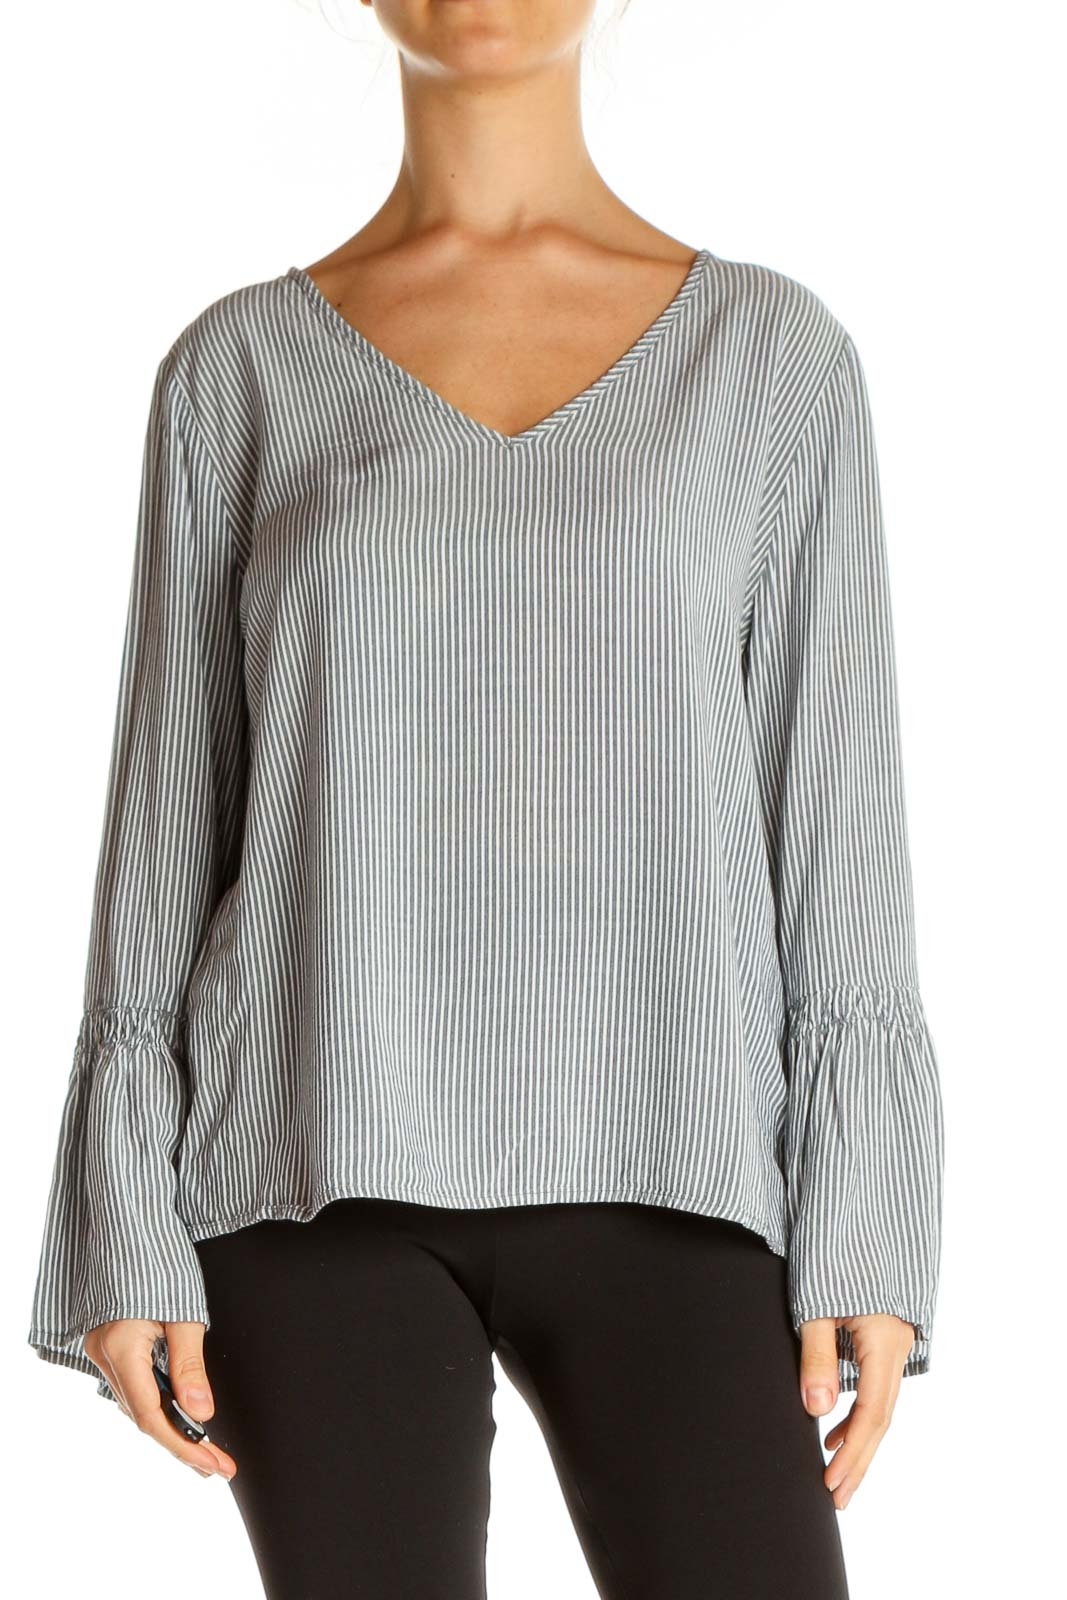 Gray Striped Brunch Blouse Front